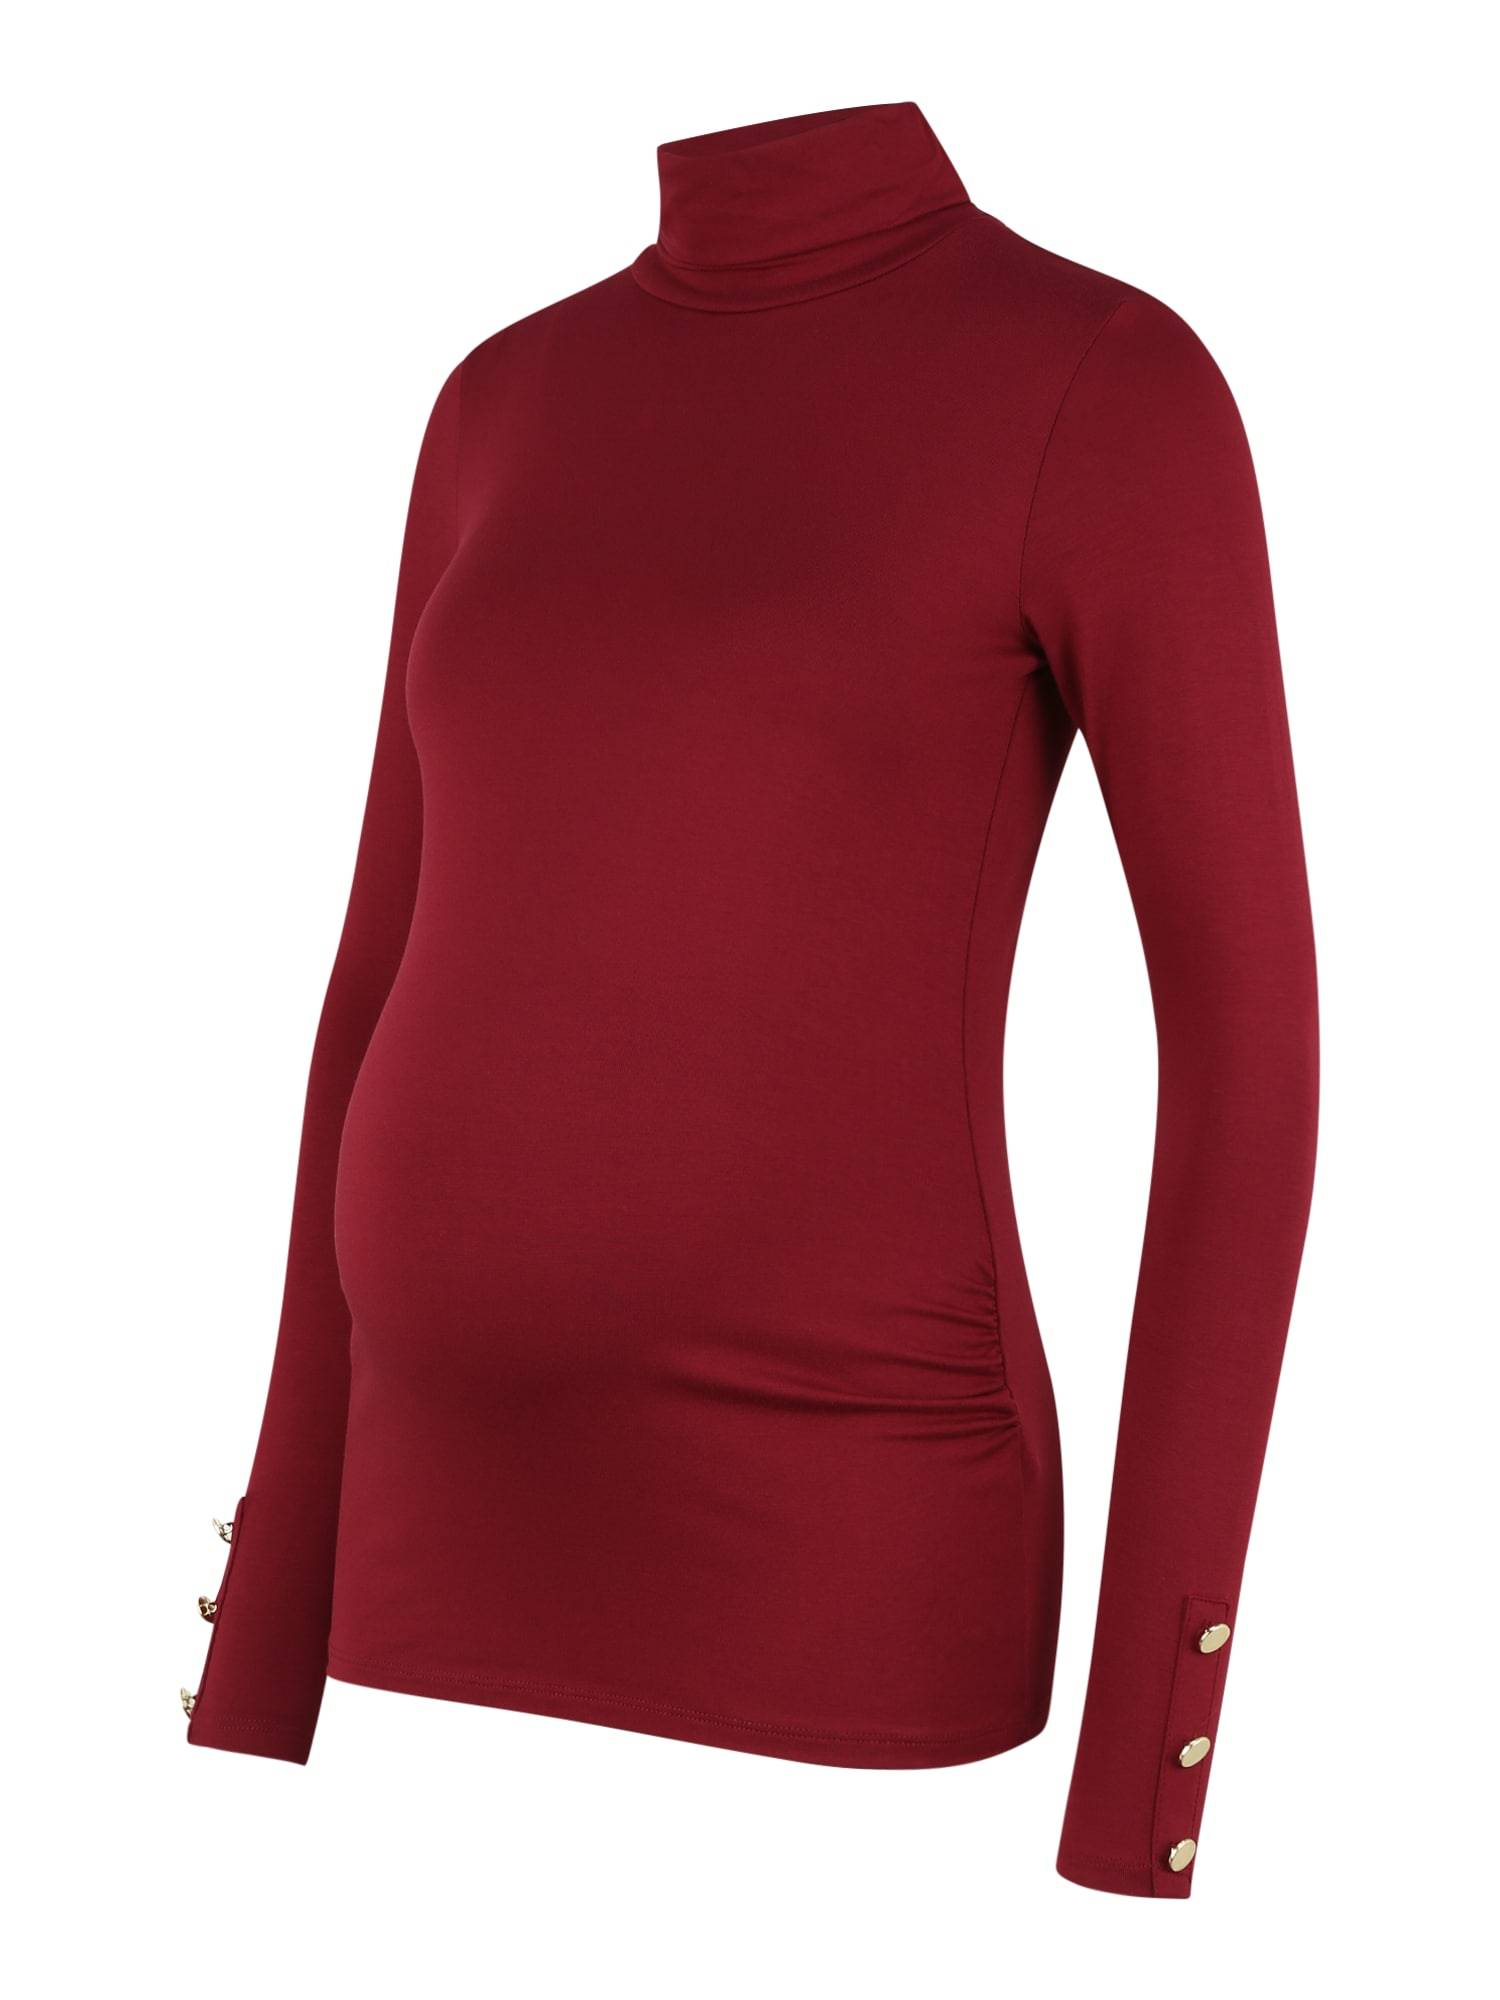 Dorothy Perkins Maternity T-shirt  - Rouge - Taille: XXL - female